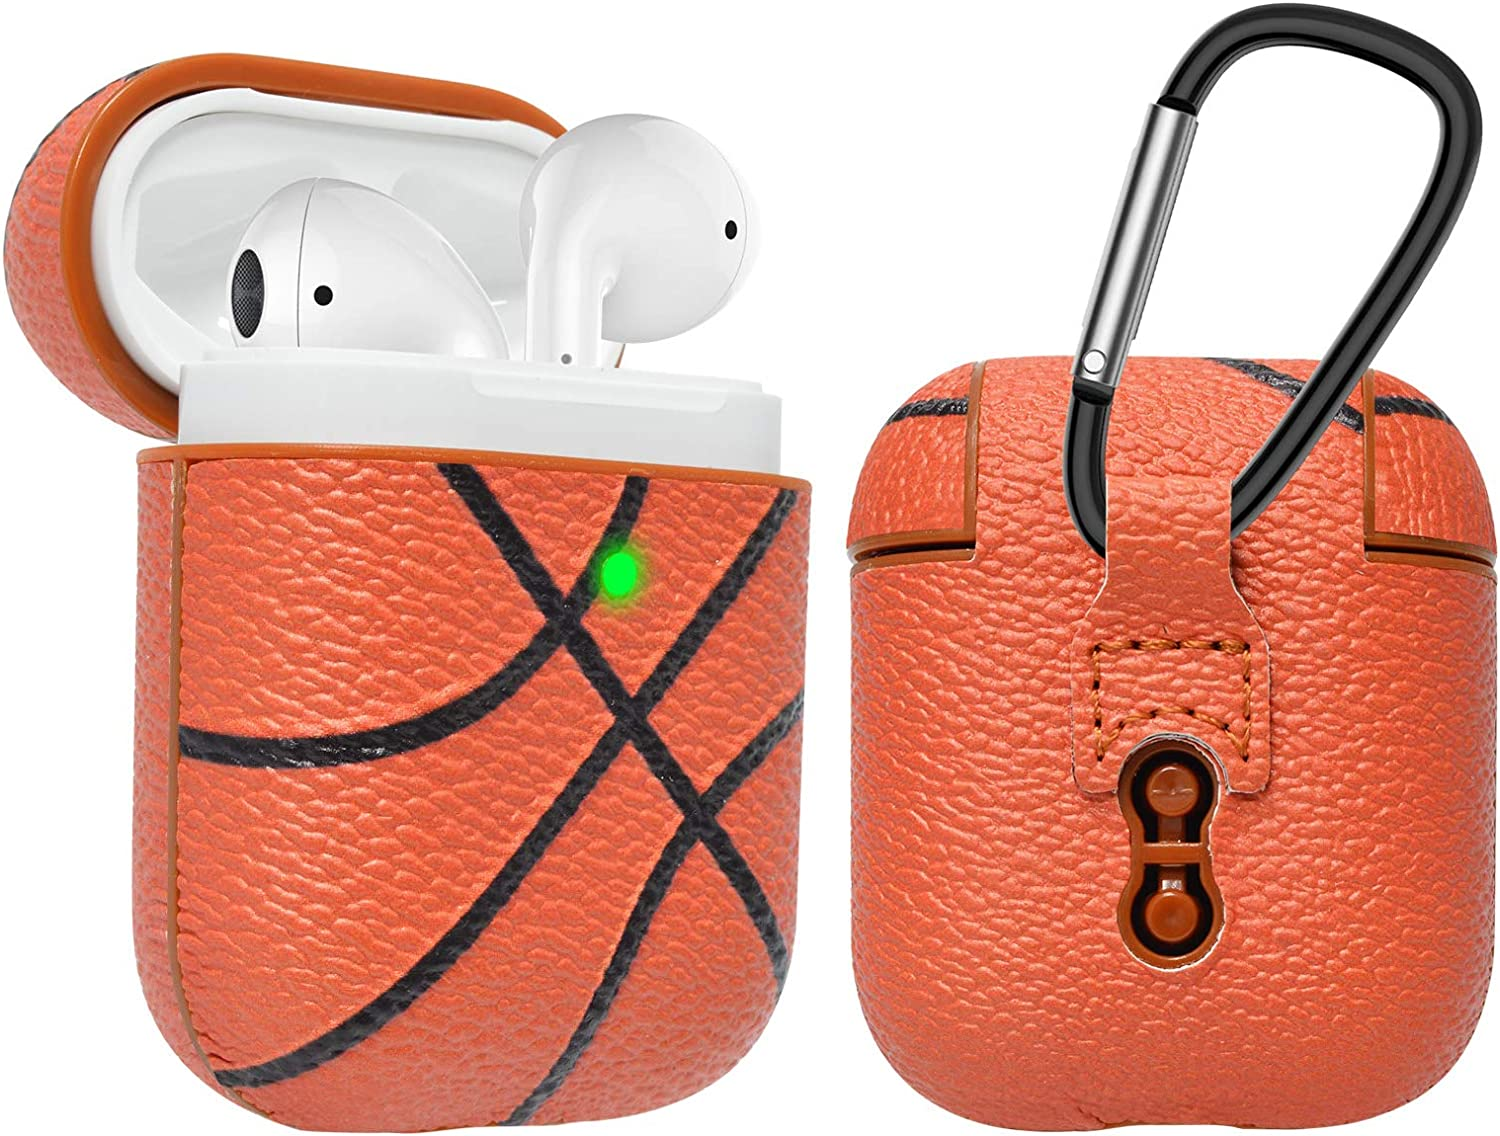 Njjex AirPods Case, AirPods PU Leather Hard Case, Portable Protective Shockproof Earphone Accessories Cover w/Carabiner/Keychain Compatible for Apple AirPods 1/ Airpods 2 Charging Case [Basketball]